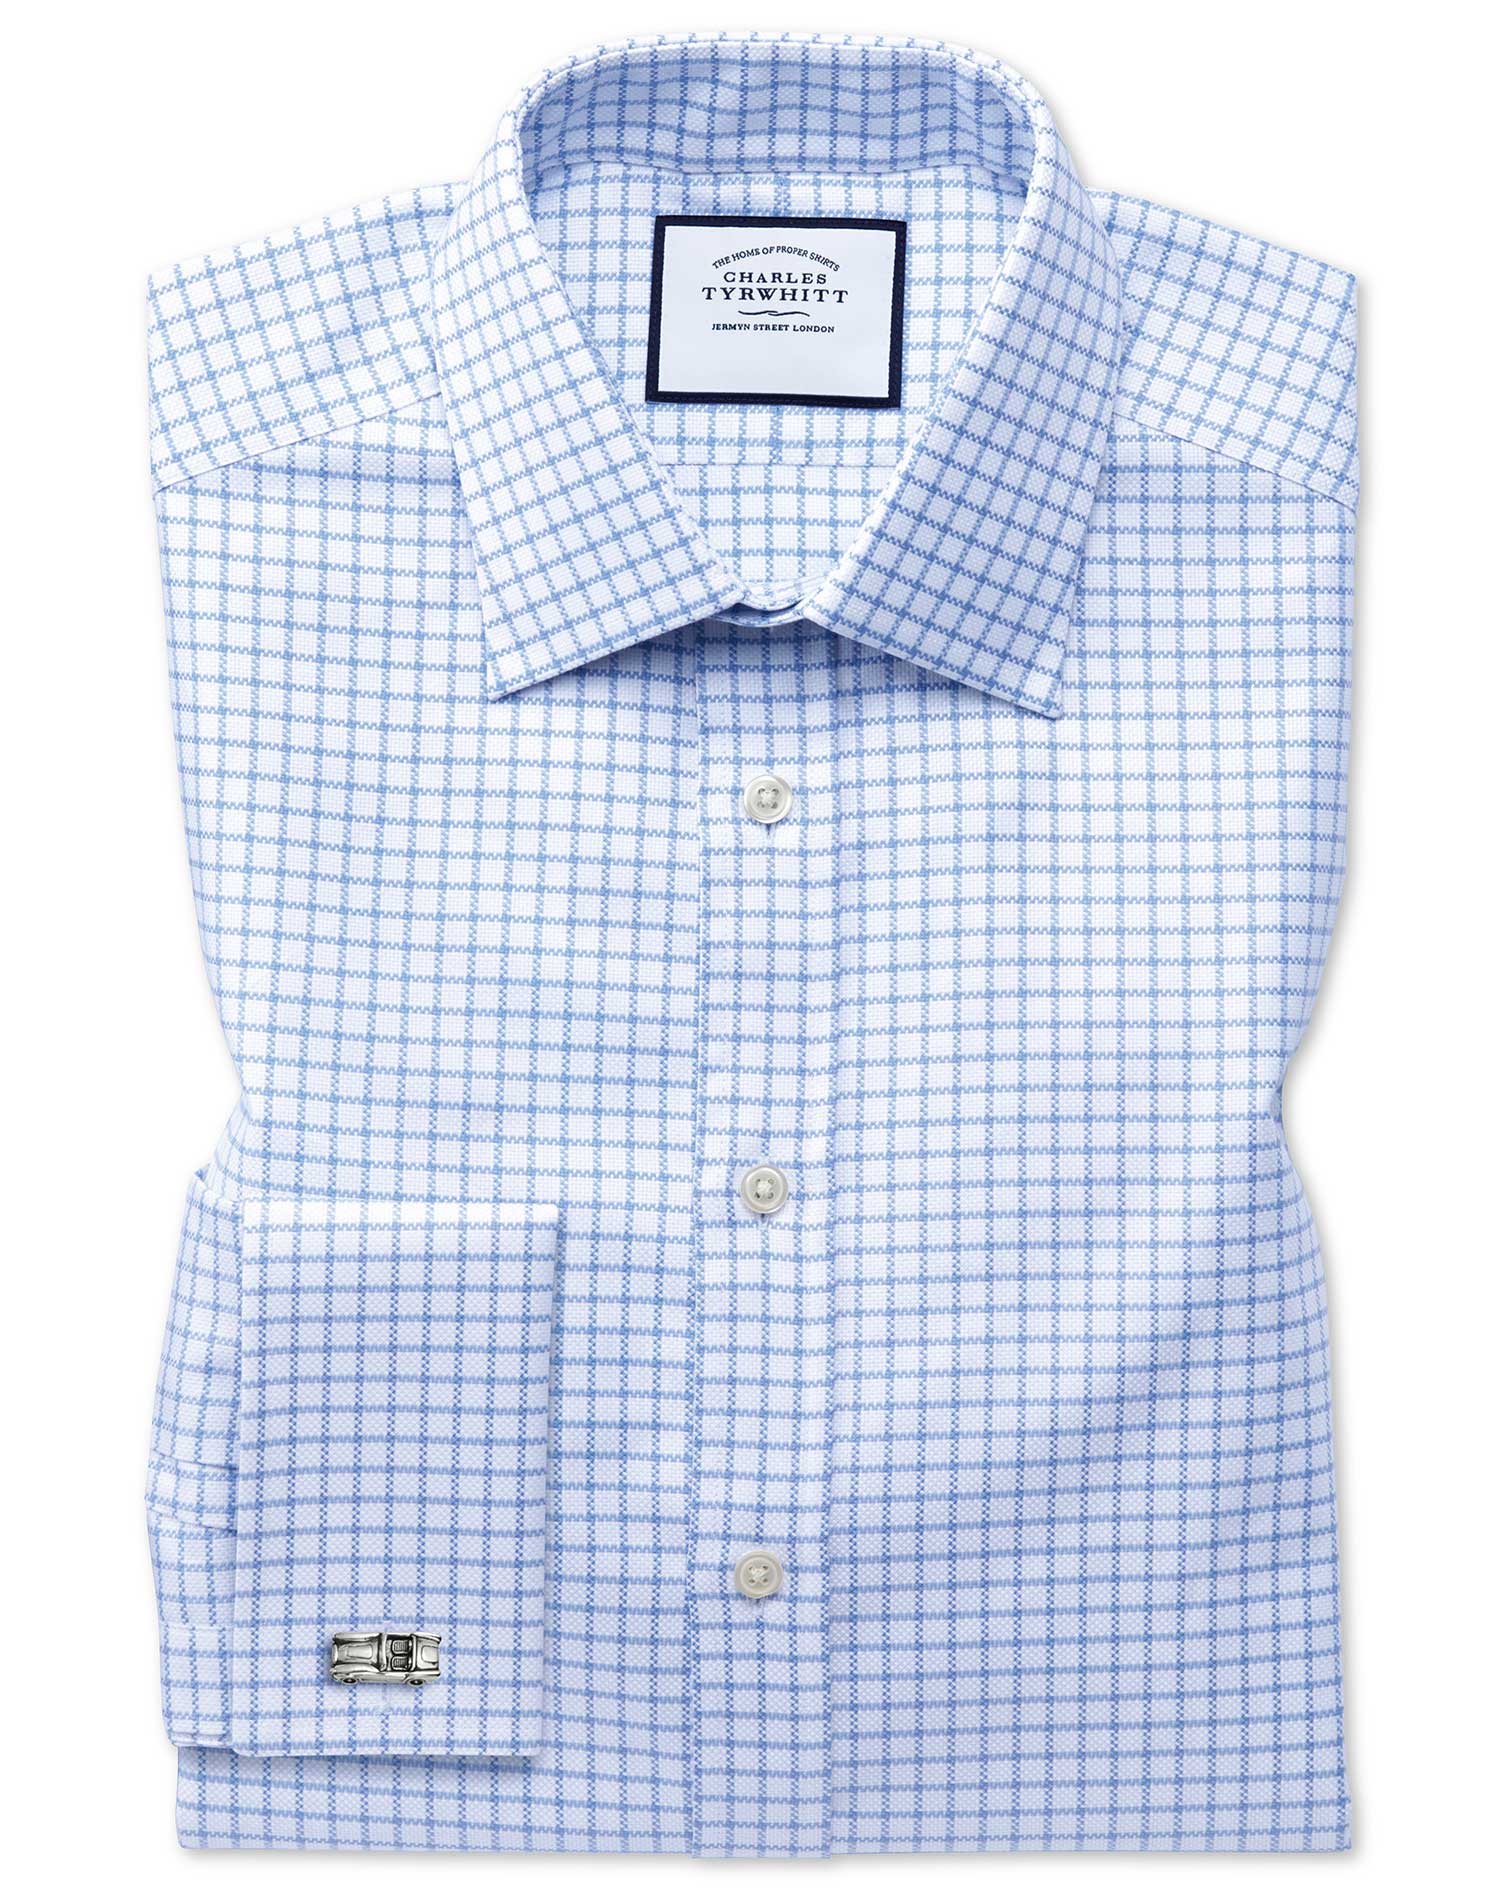 Classic Fit Egyptian Cotton Royal Oxford Sky Blue Check Formal Shirt Double Cuff Size 16.5/34 by Cha